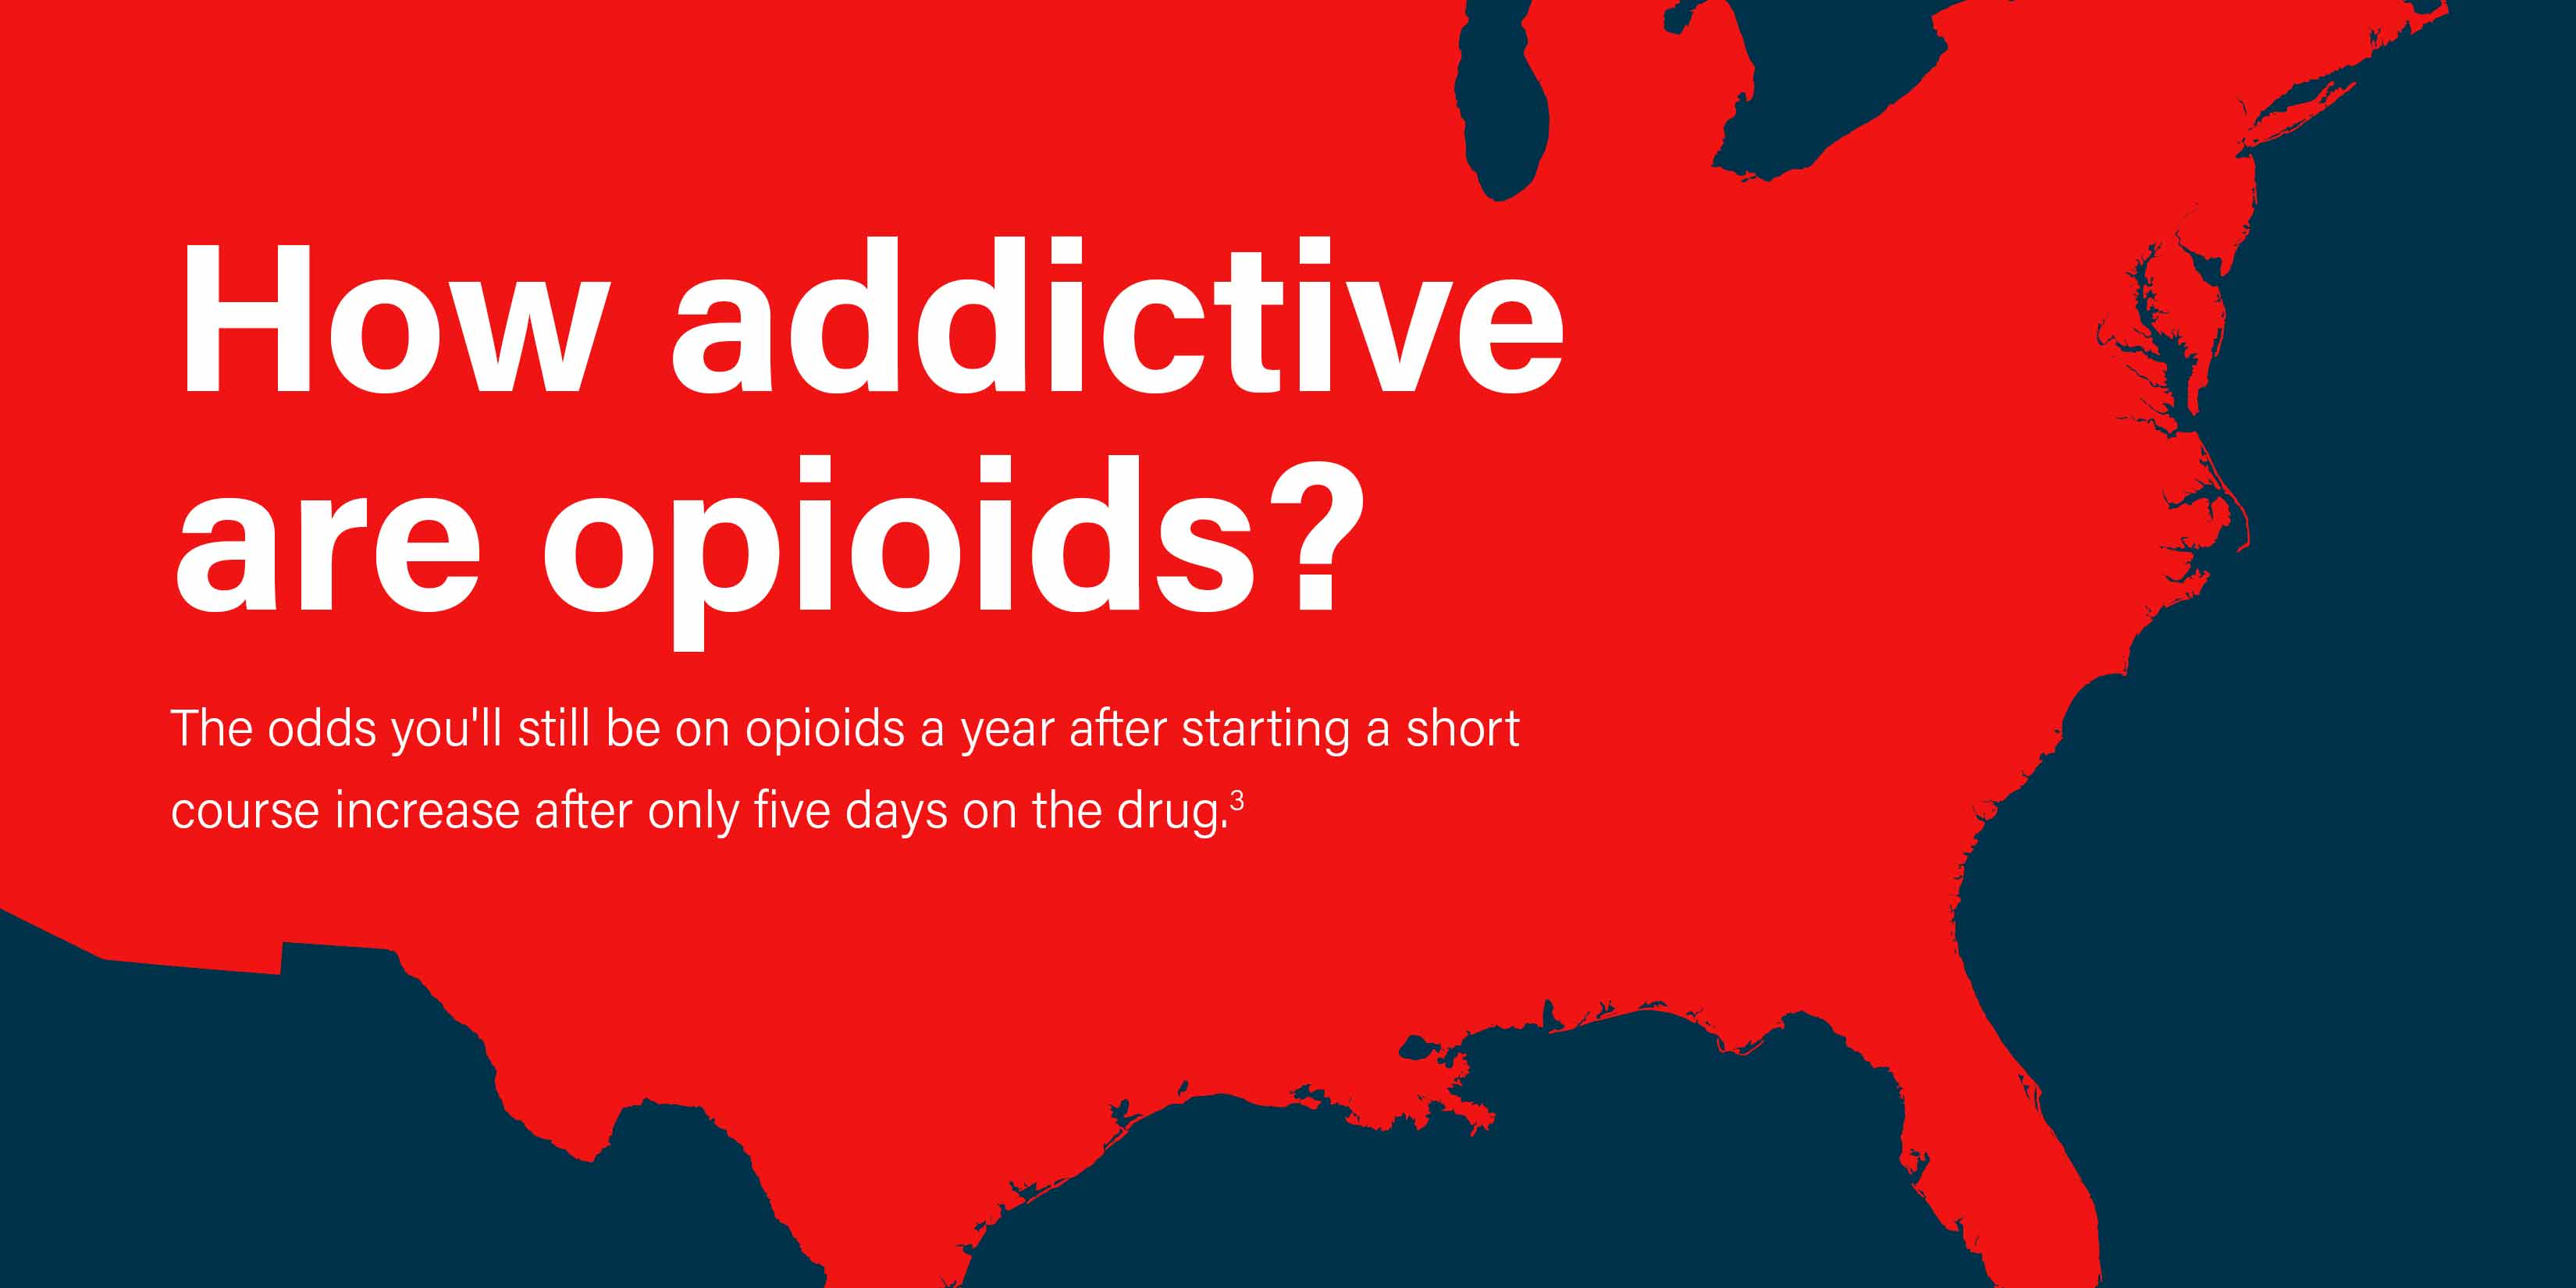 How addictive are opioids? The odds you'll still be on opioids a year after starting a short course increase after only five days on the drug.[3]